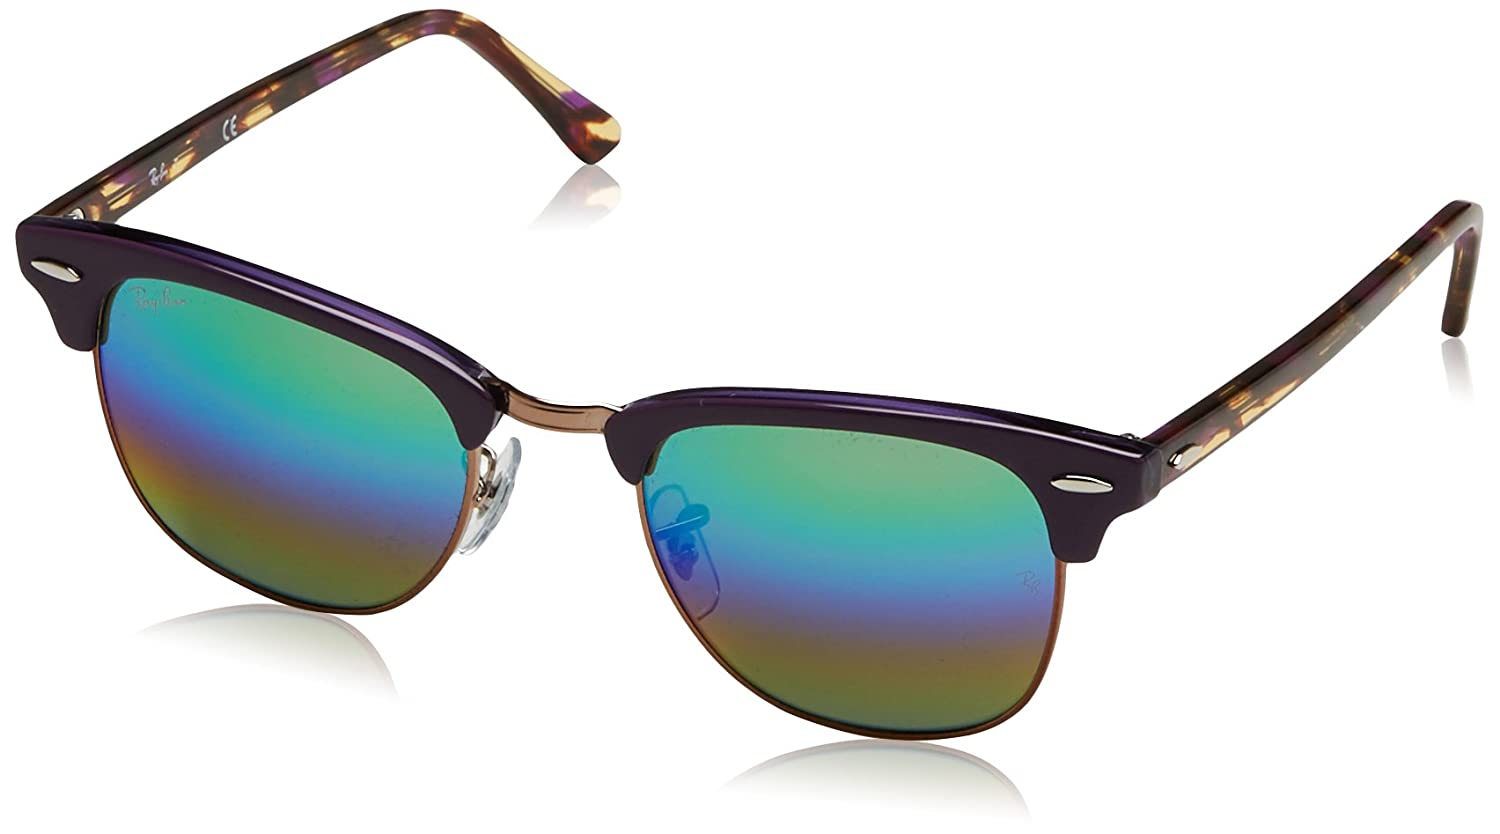 41ebd864060 Amazon.com  Ray-Ban RB3016 Classic Clubmaster Sunglasses  Clothing